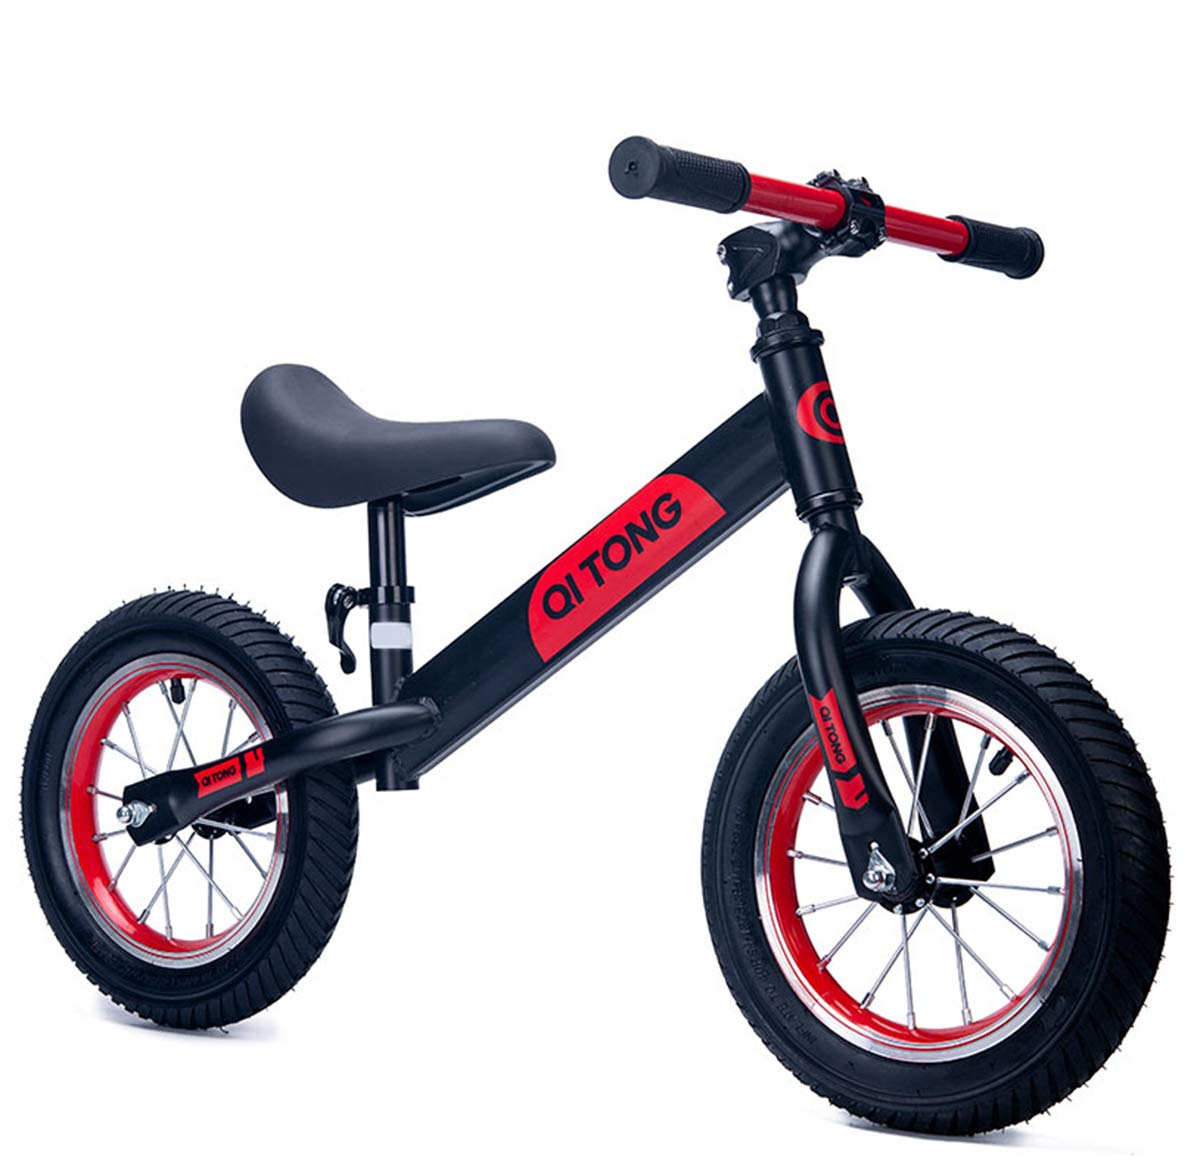 Gostorechoice Kids Balance Bike No Pedal Learn to Ride Pre Bike Adjustable Height Age 2-6 Years (Black)